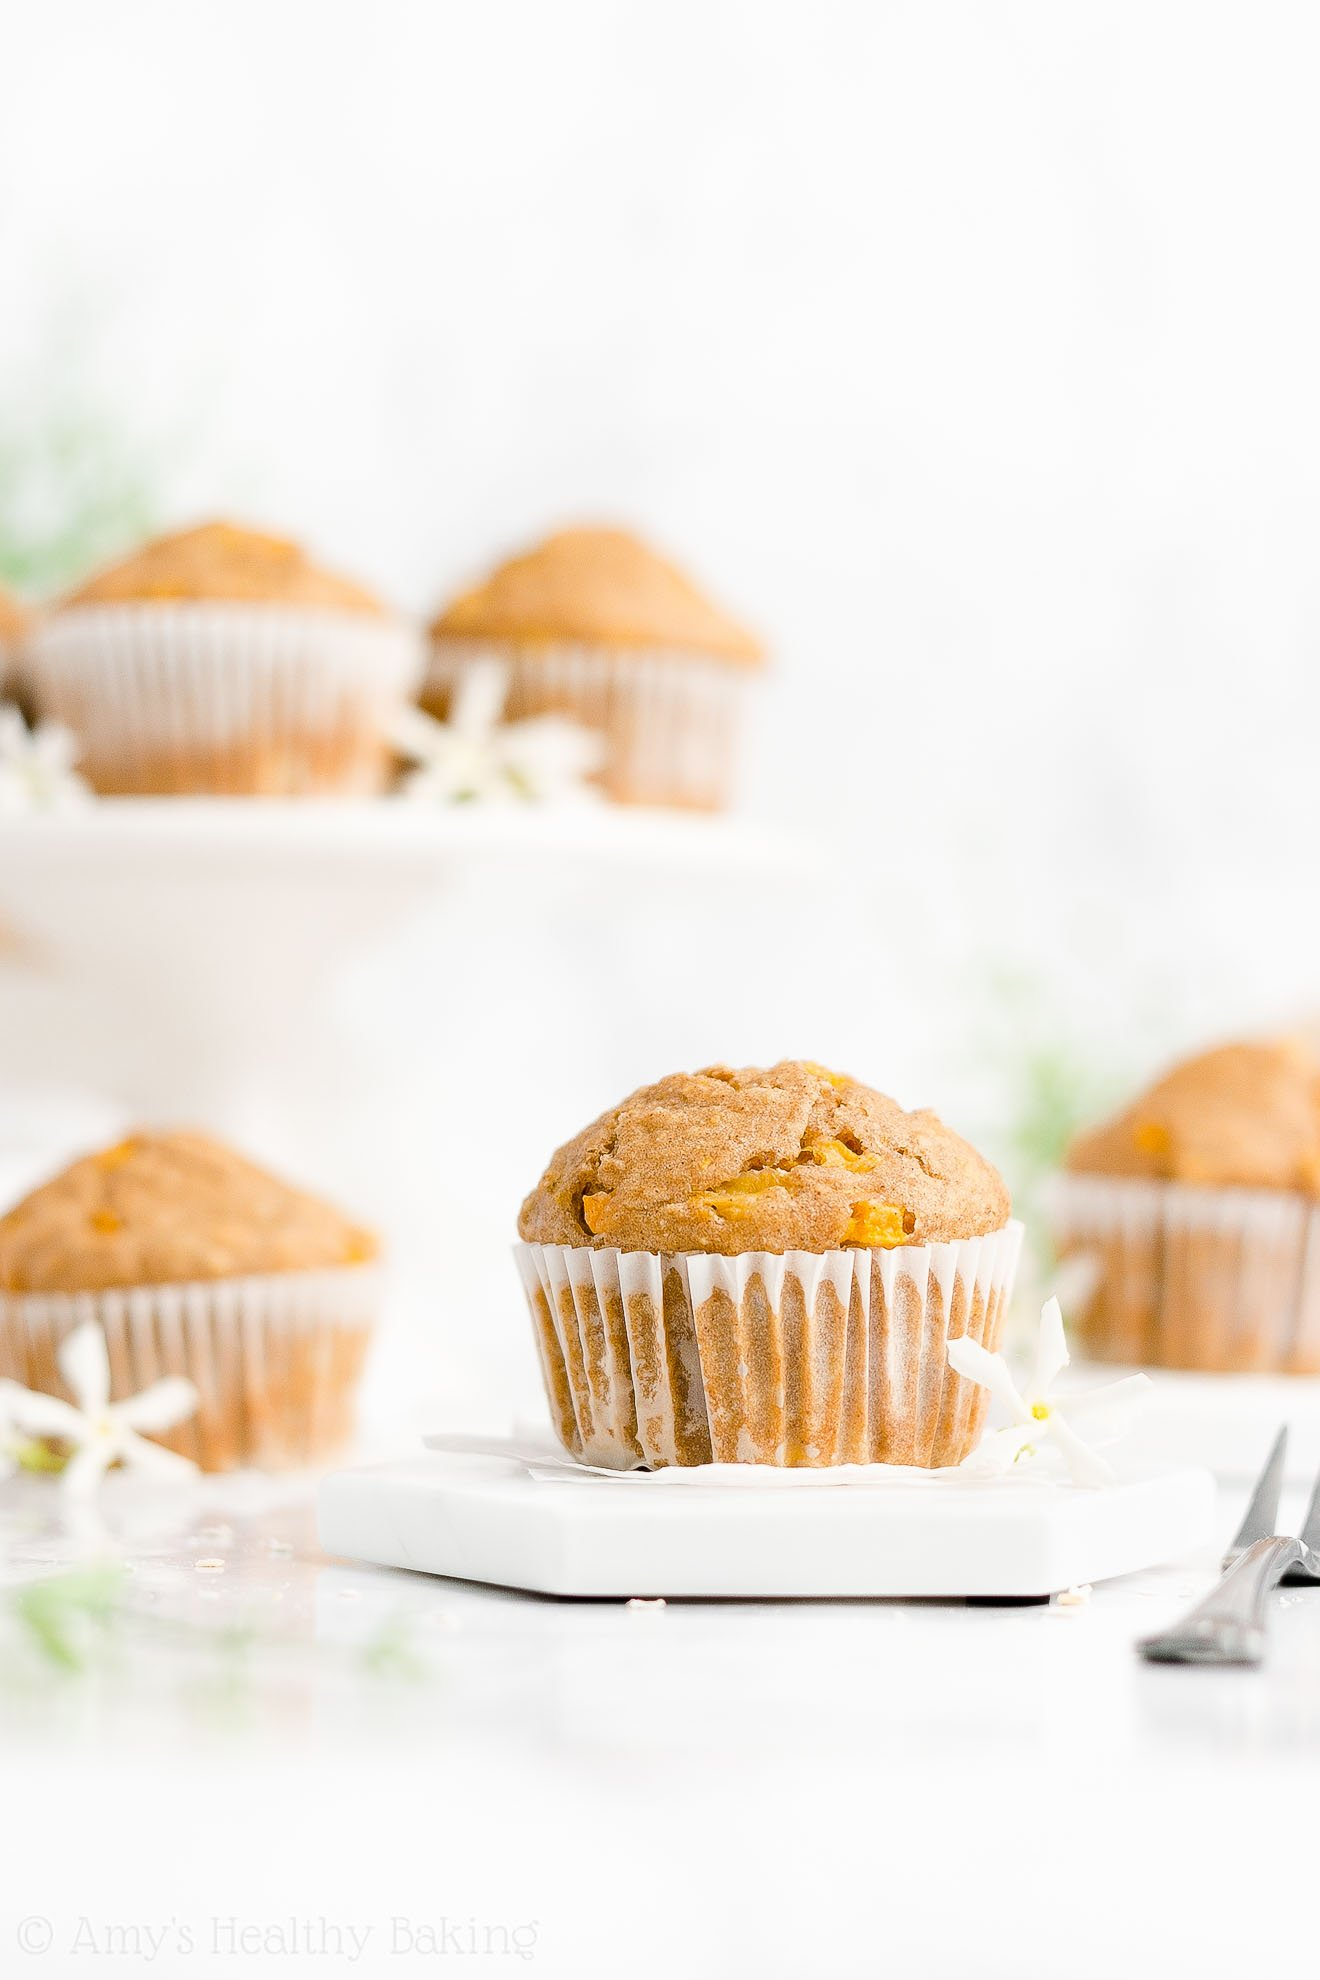 Easy Healthy Low Fat Low Sugar Gluten Free Moist Fresh Peach Oatmeal Muffins